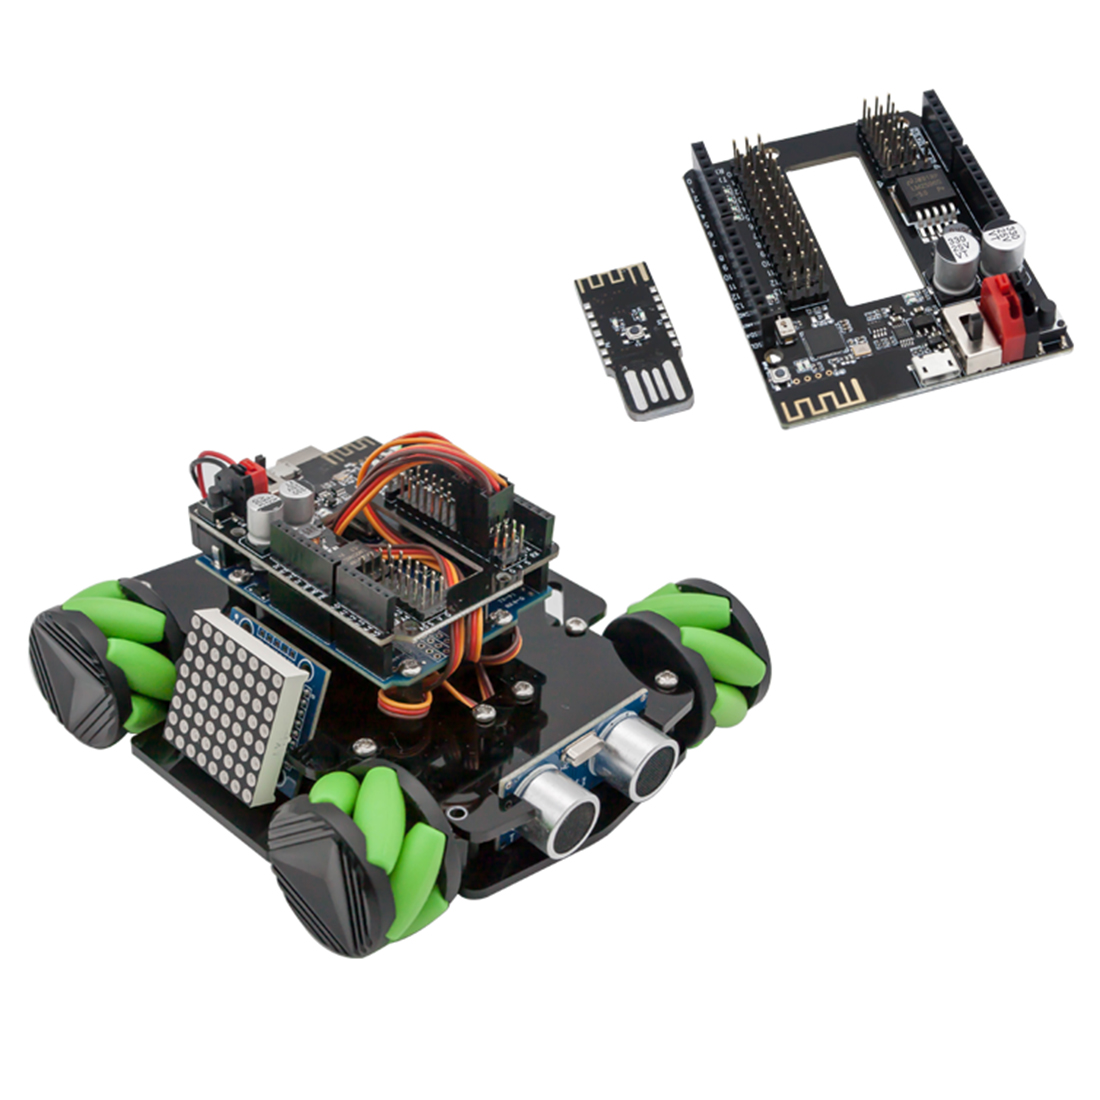 DIY Obstacle Avoidance Smart Programmable Robot Car Educational Learning Kit With Mecanum Wheels For Arduino - Set C